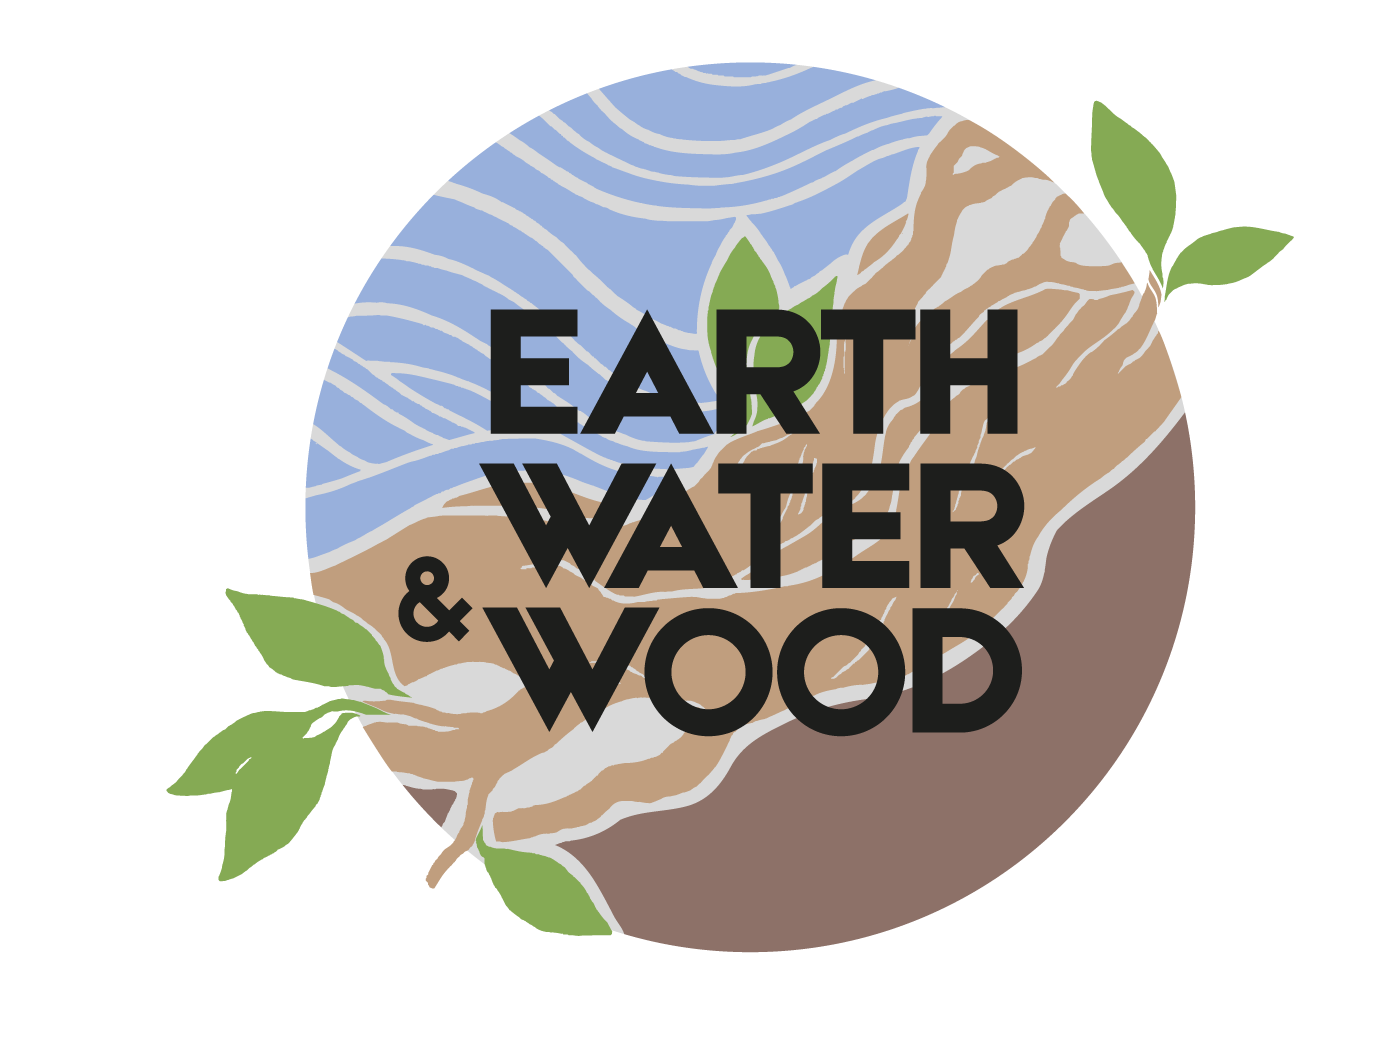 Earth water wood